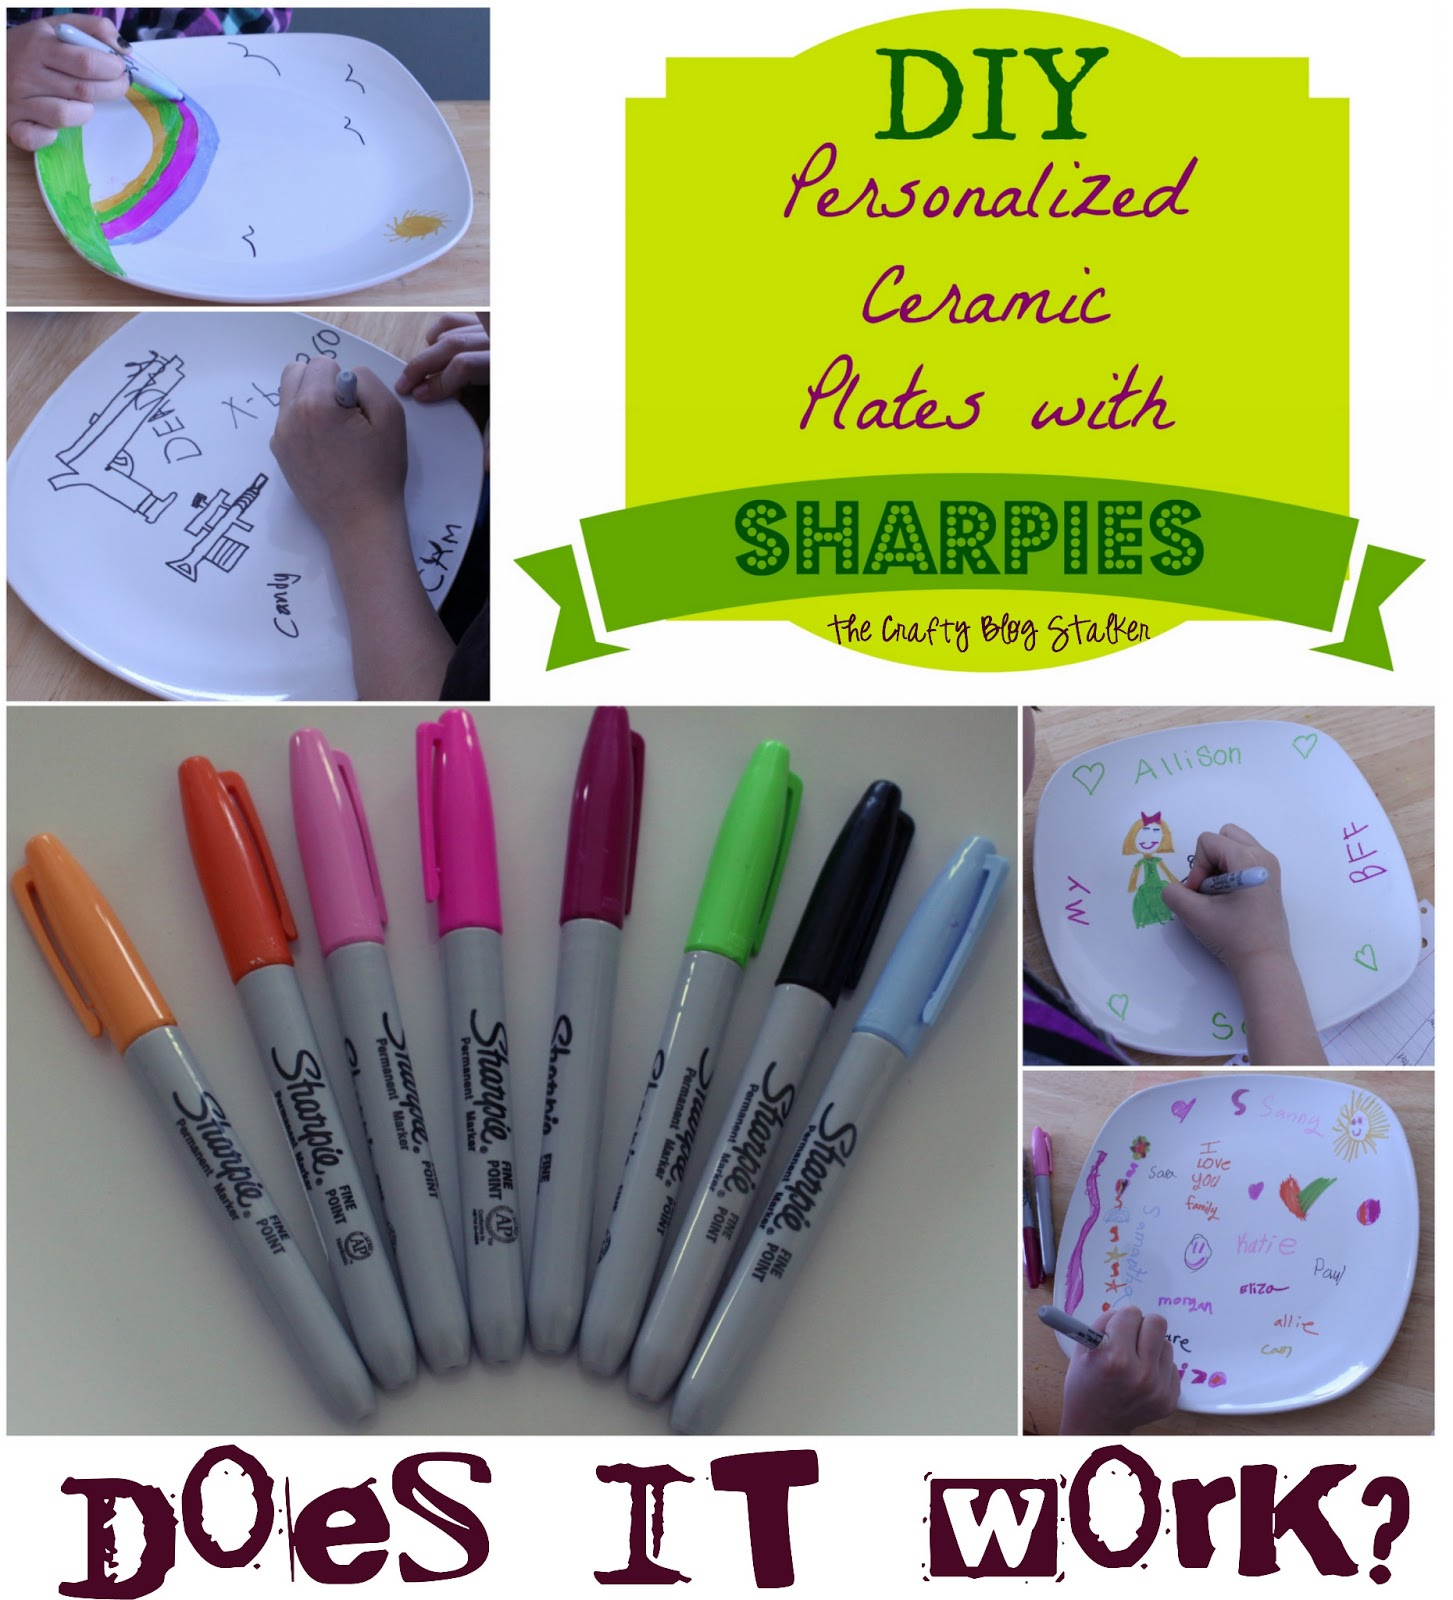 How To Personalize Ceramic Plates W Sharpies The Crafty